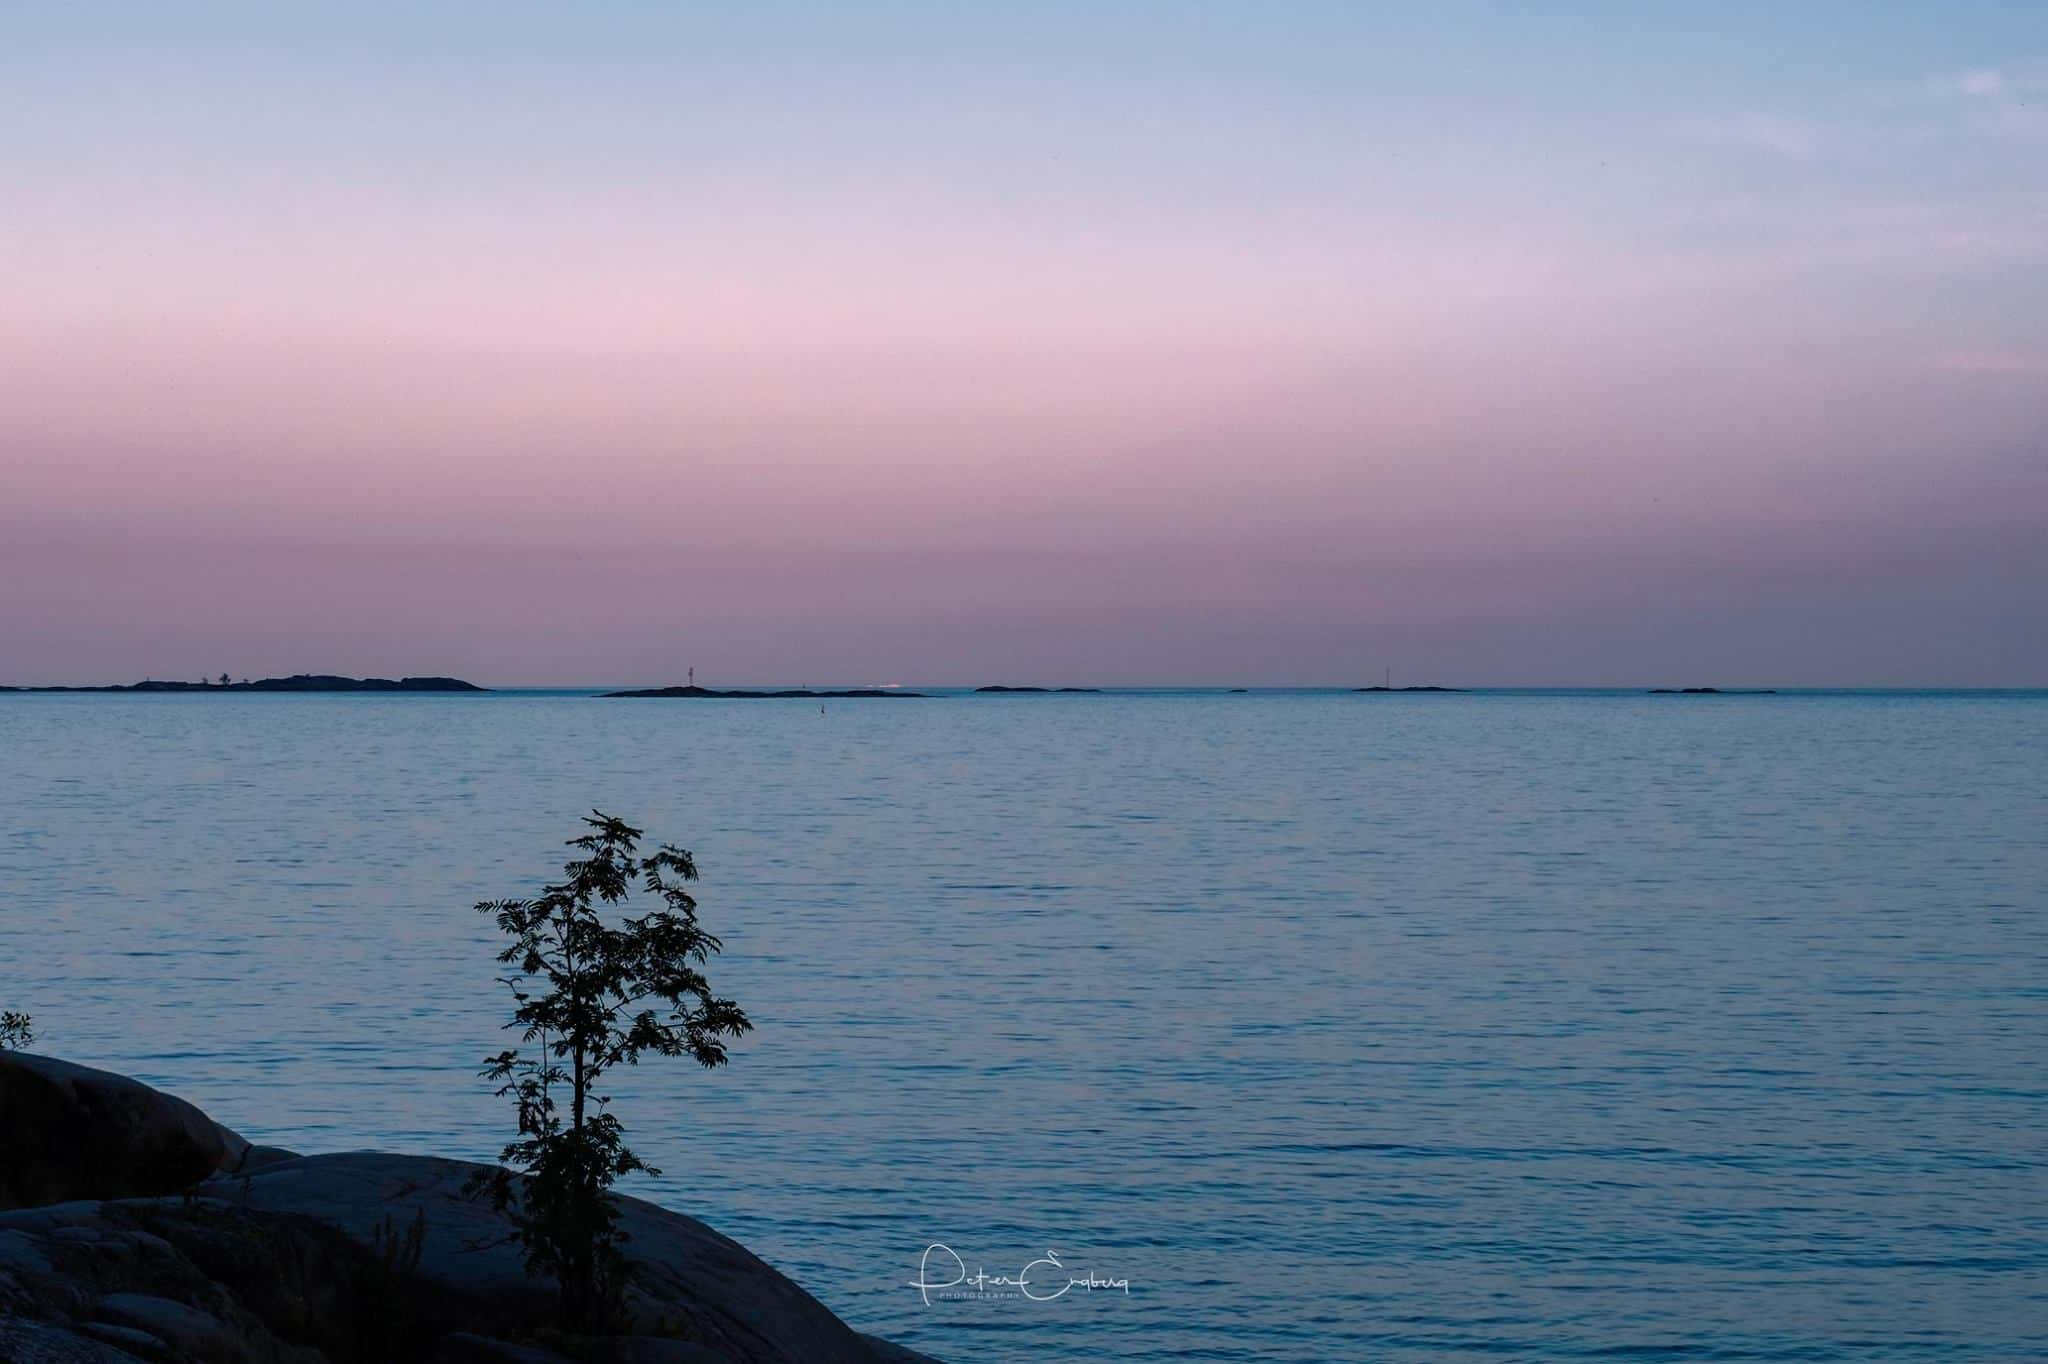 Photo of soft purple and blue sunset with silhouette of cliff and single tree in foreground